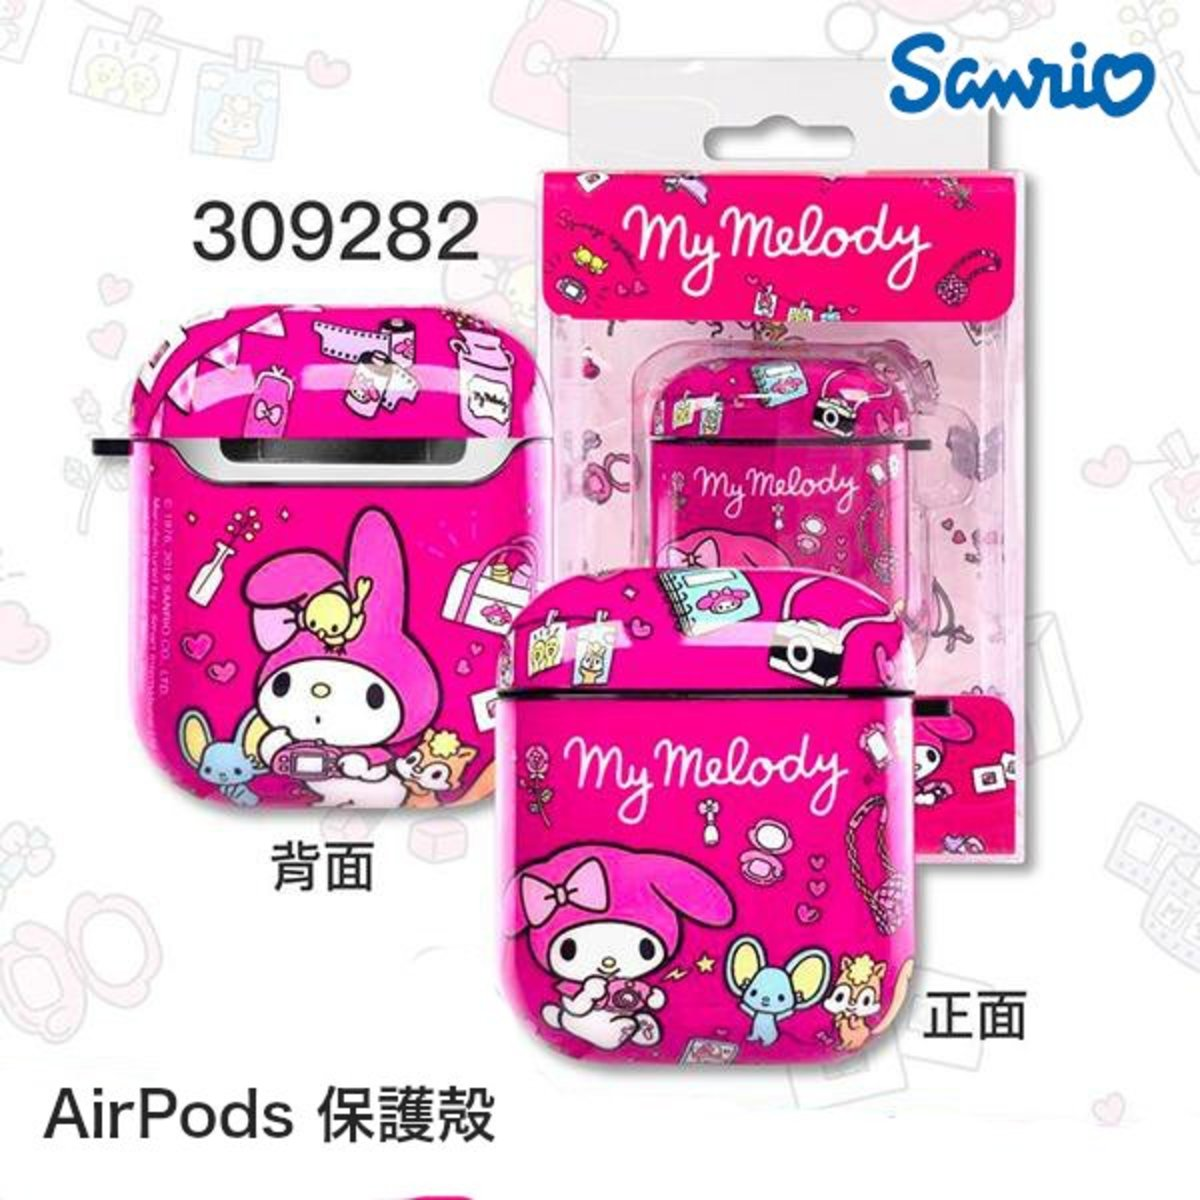 SANRIO - Airpods 保護殼 (My Melody)